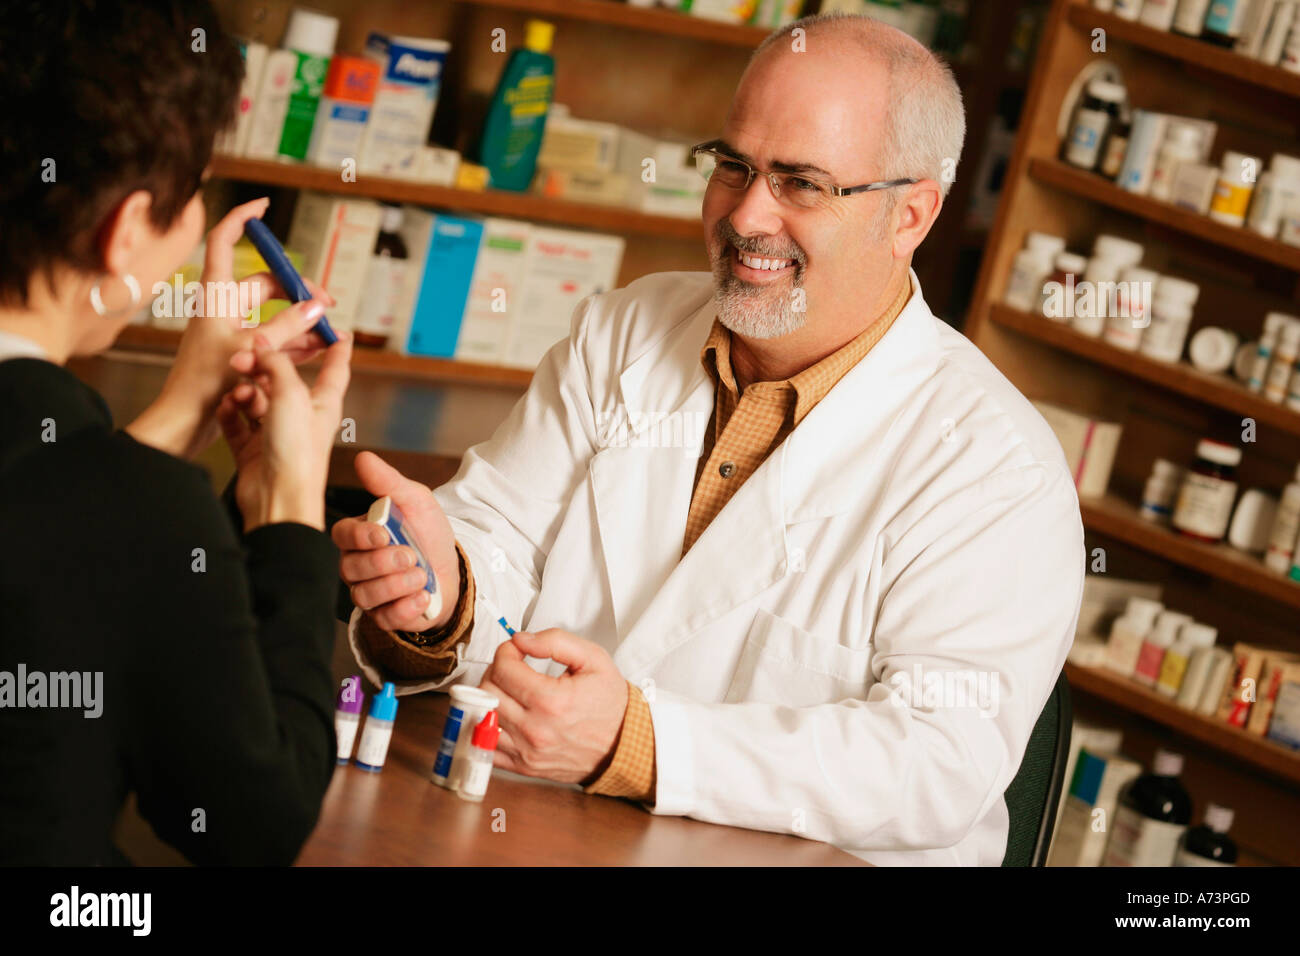 A customer seeks advise from a pharmacist - Stock Image